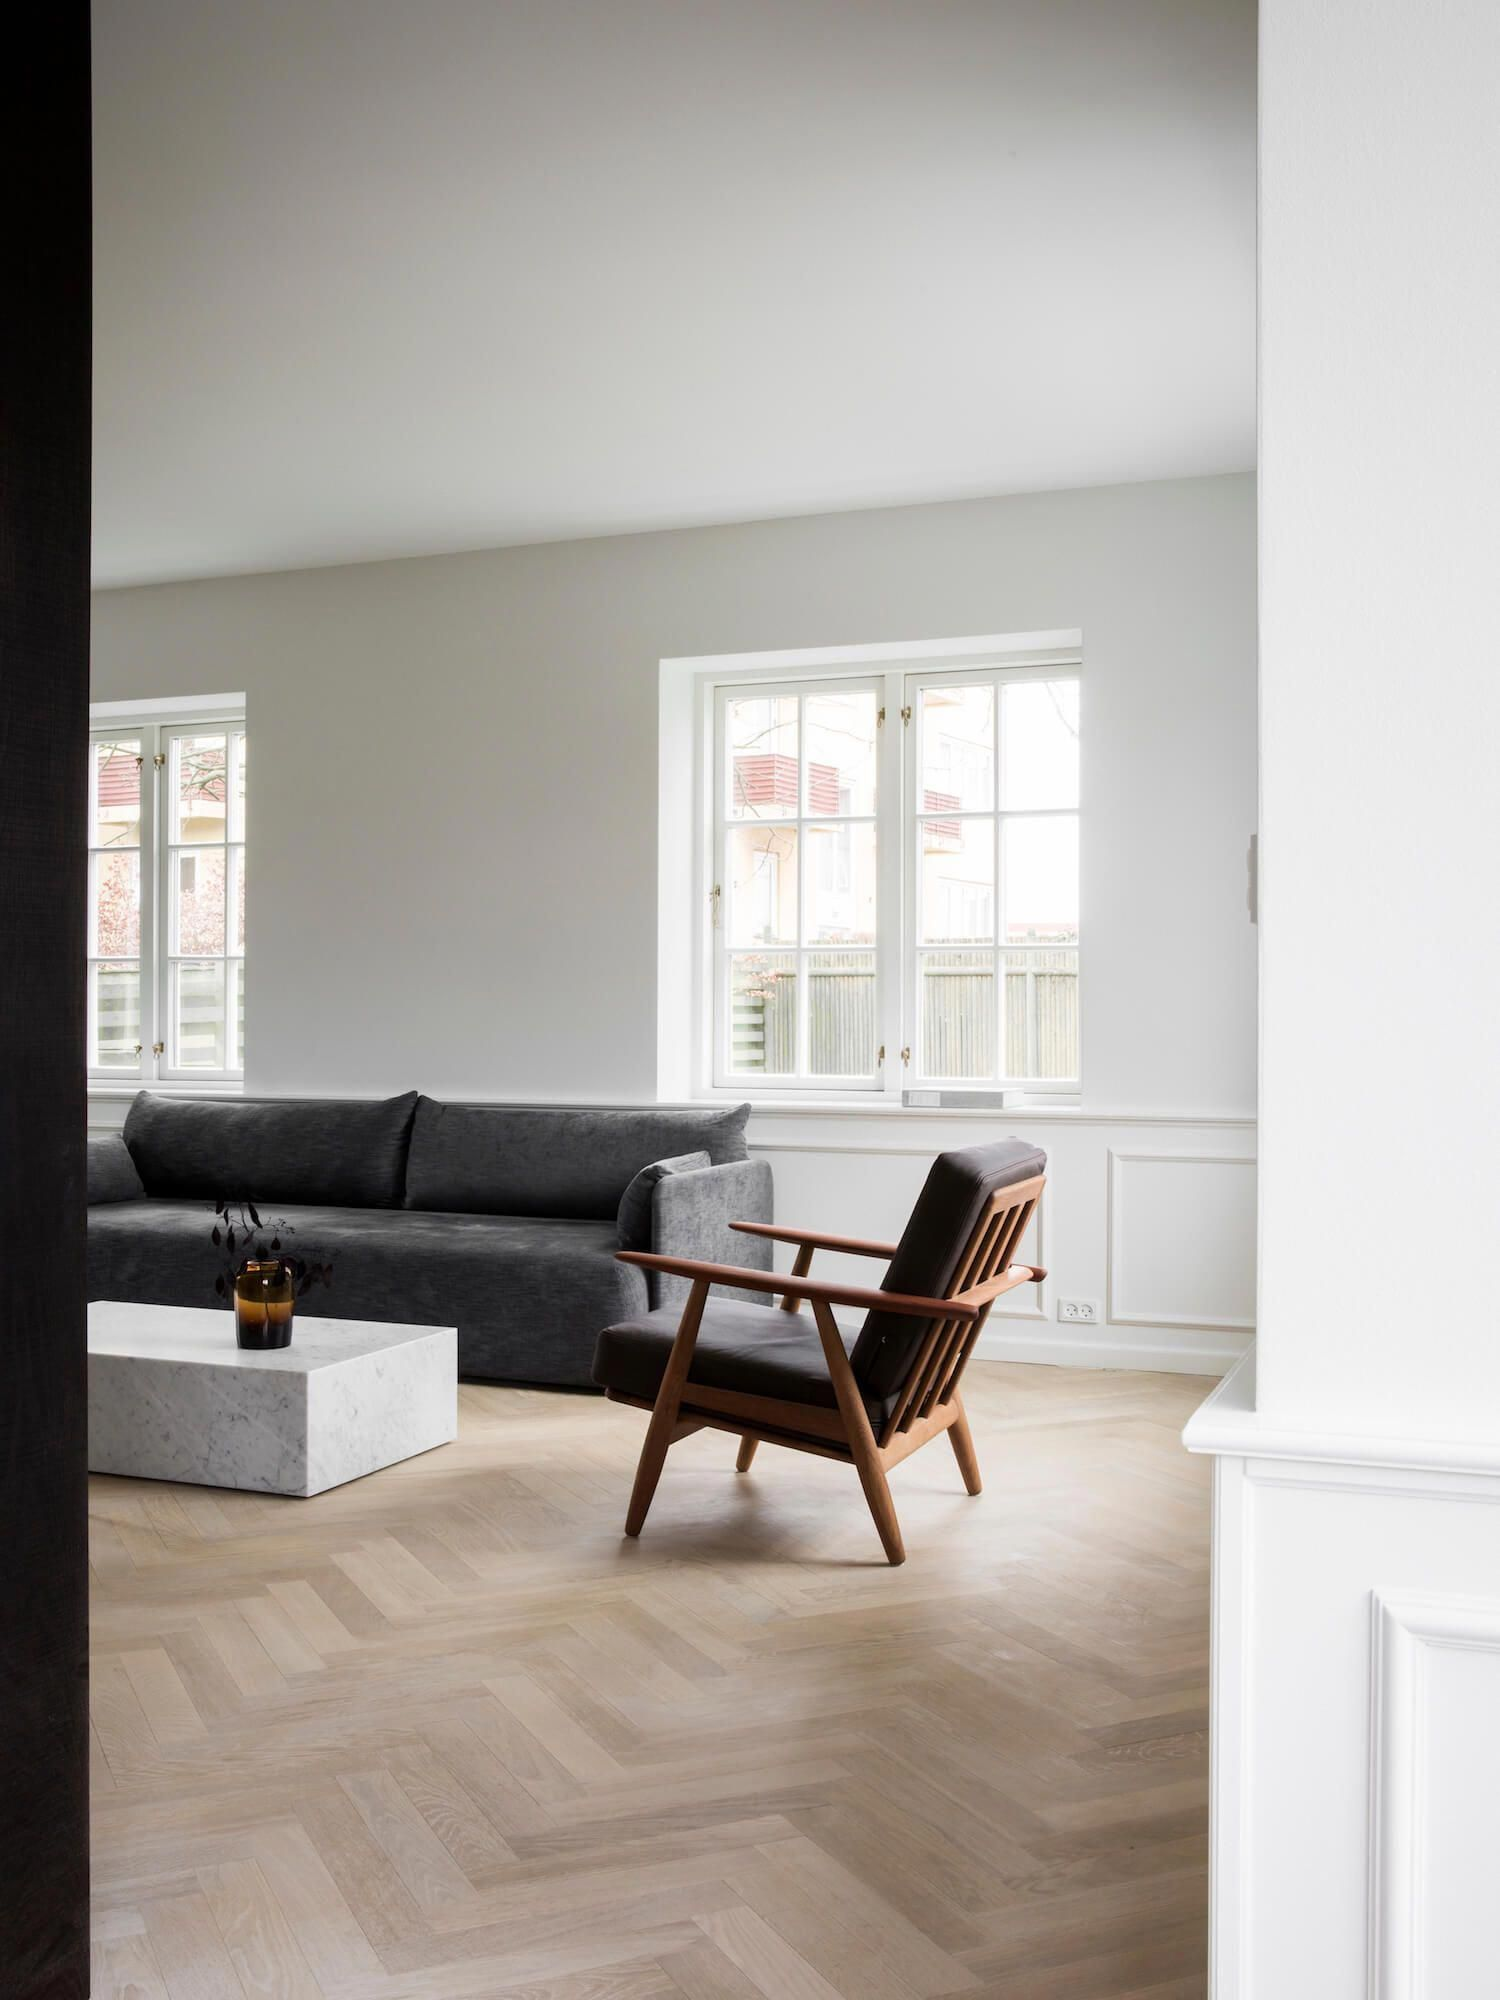 Design  photography norm architects sweet home make sweethomemake interior decoration also rh pinterest